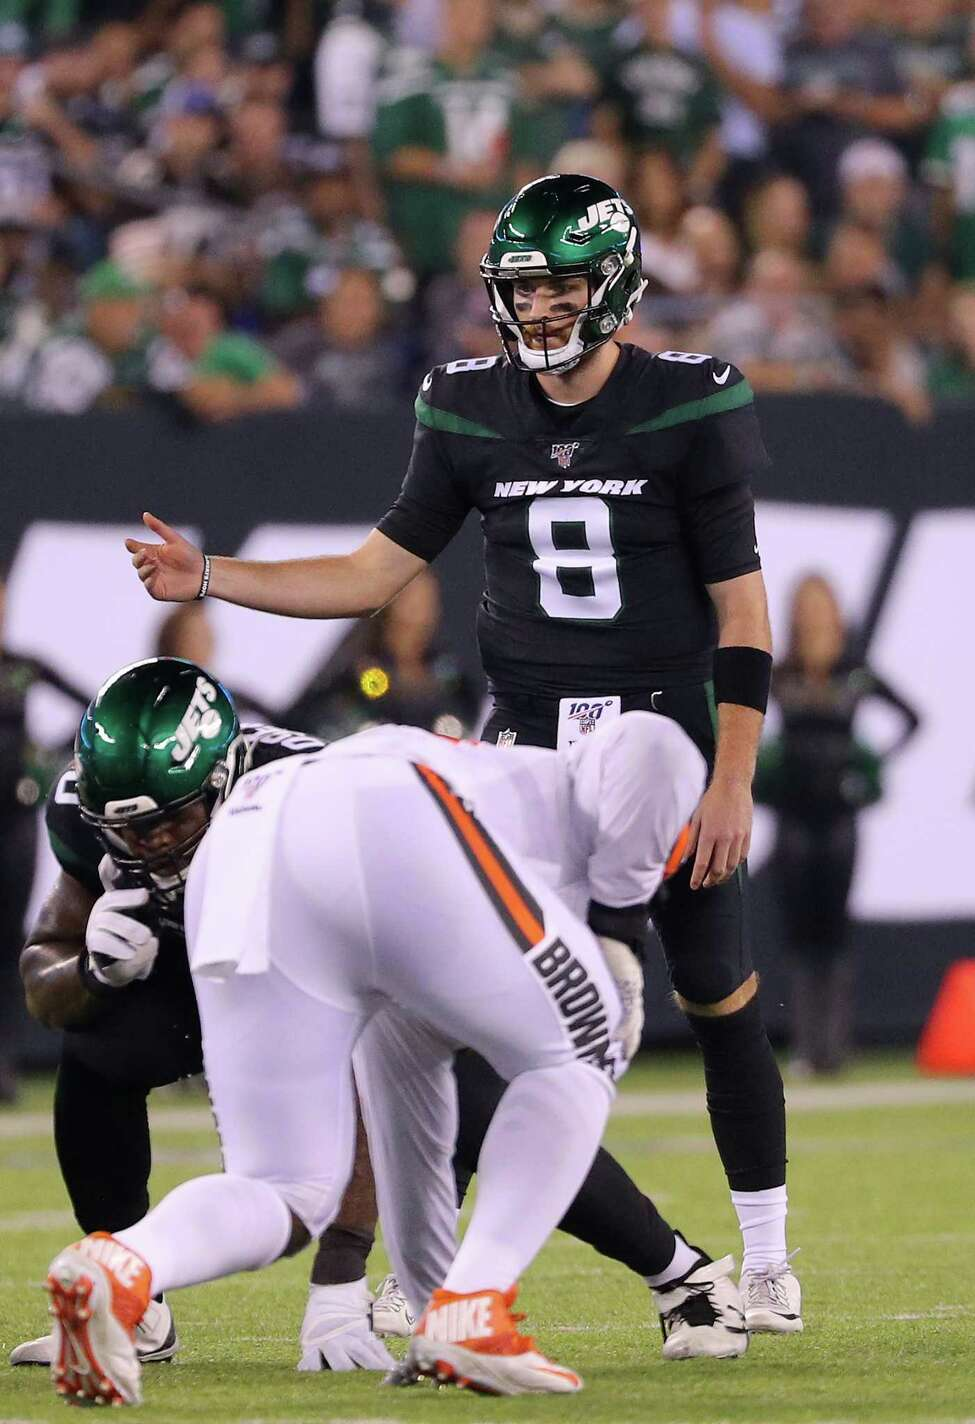 EAST RUTHERFORD, NEW JERSEY - SEPTEMBER 16: Luke Falk #8 of the New York Jets signals at the line before the snap in the second quarter against the Cleveland Browns at MetLife Stadium on September 16, 2019 in East Rutherford, New Jersey. (Photo by Mike Lawrie/Getty Images)